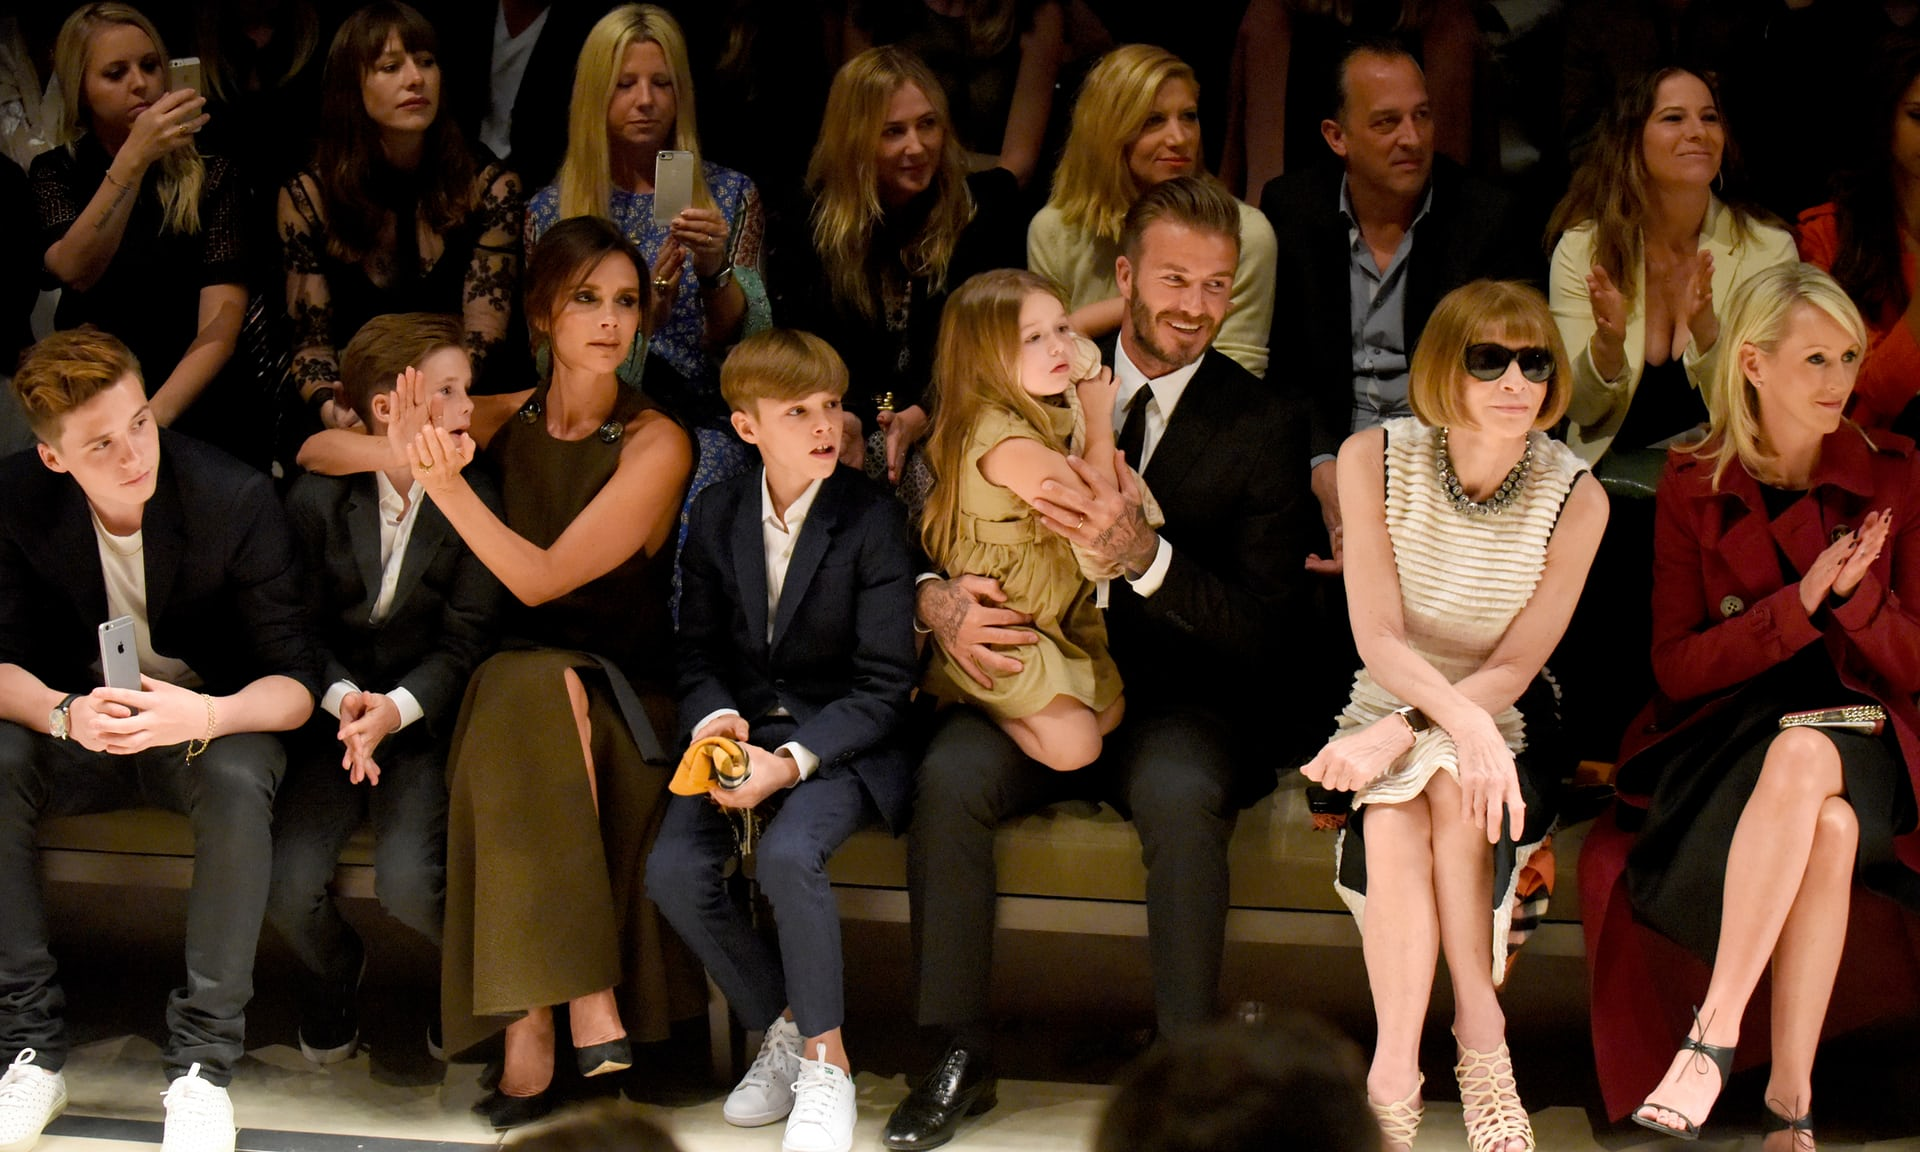 Victoria Beckham at a Burberry show in Los Angeles in April with her family. From left, Brooklyn, Cruz, Romeo, Harper, David, and the editor of Vogue, Anna Wintour..jpg